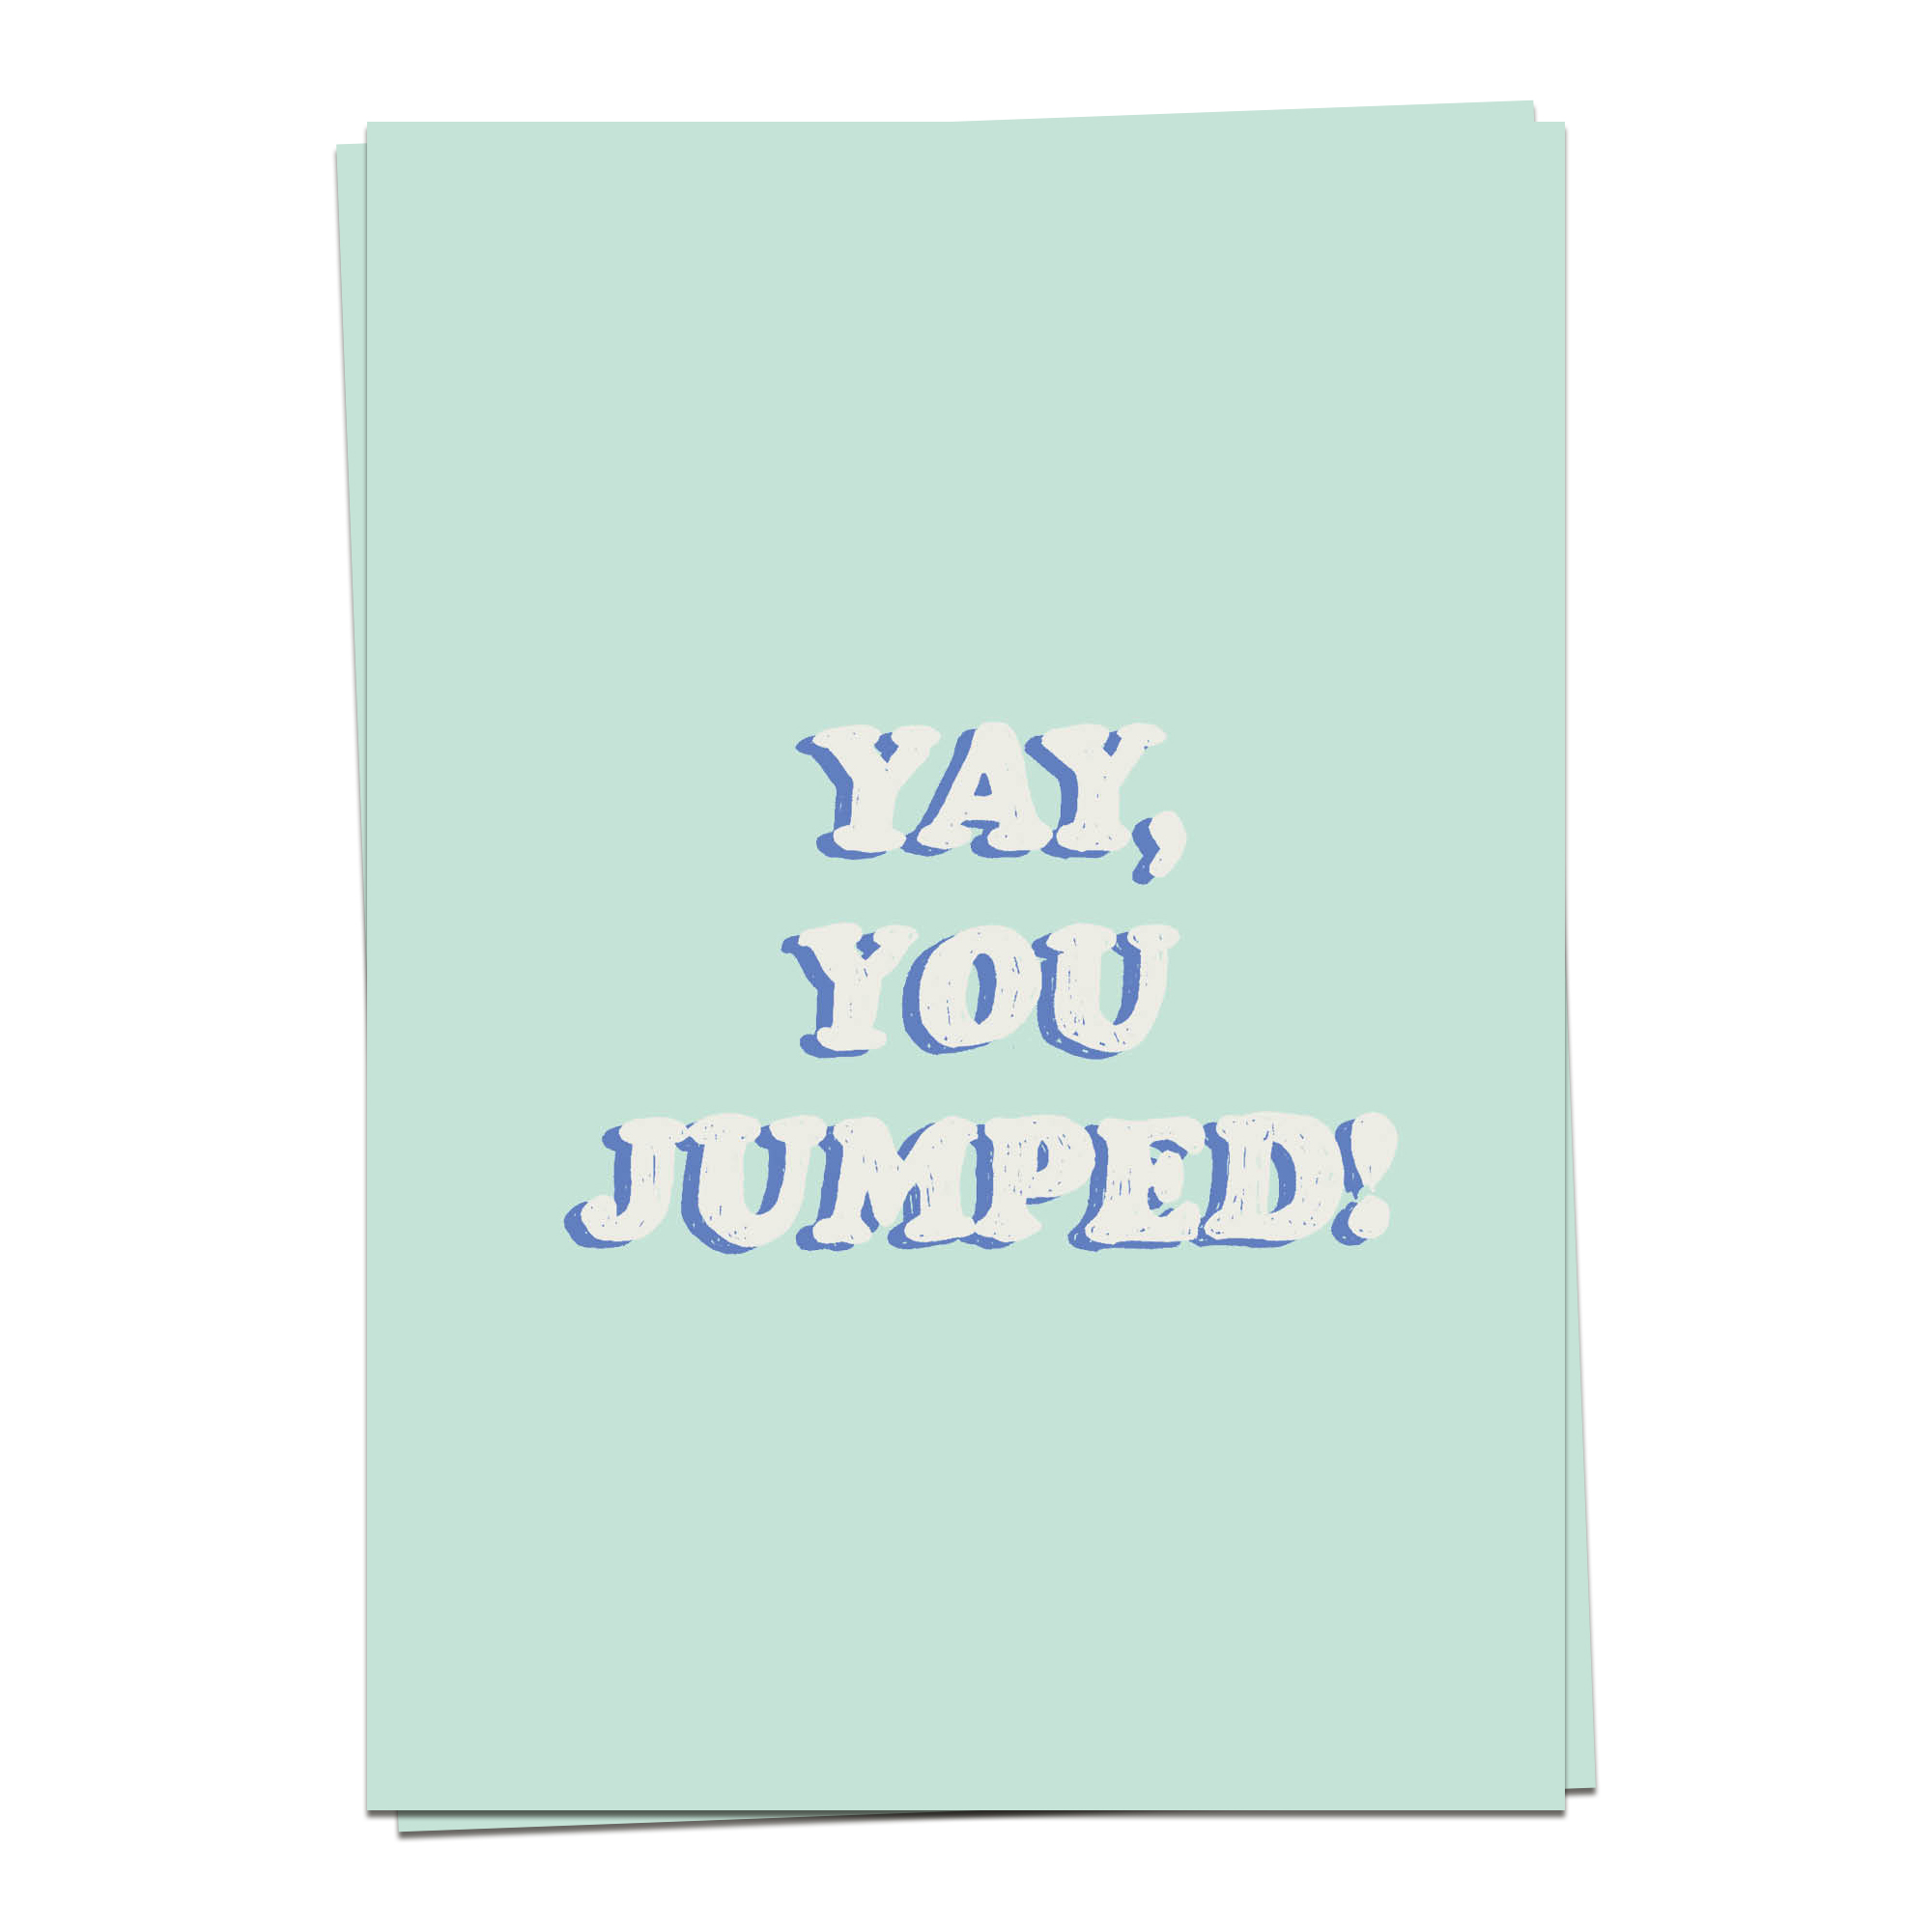 Support – Yay, you jumped